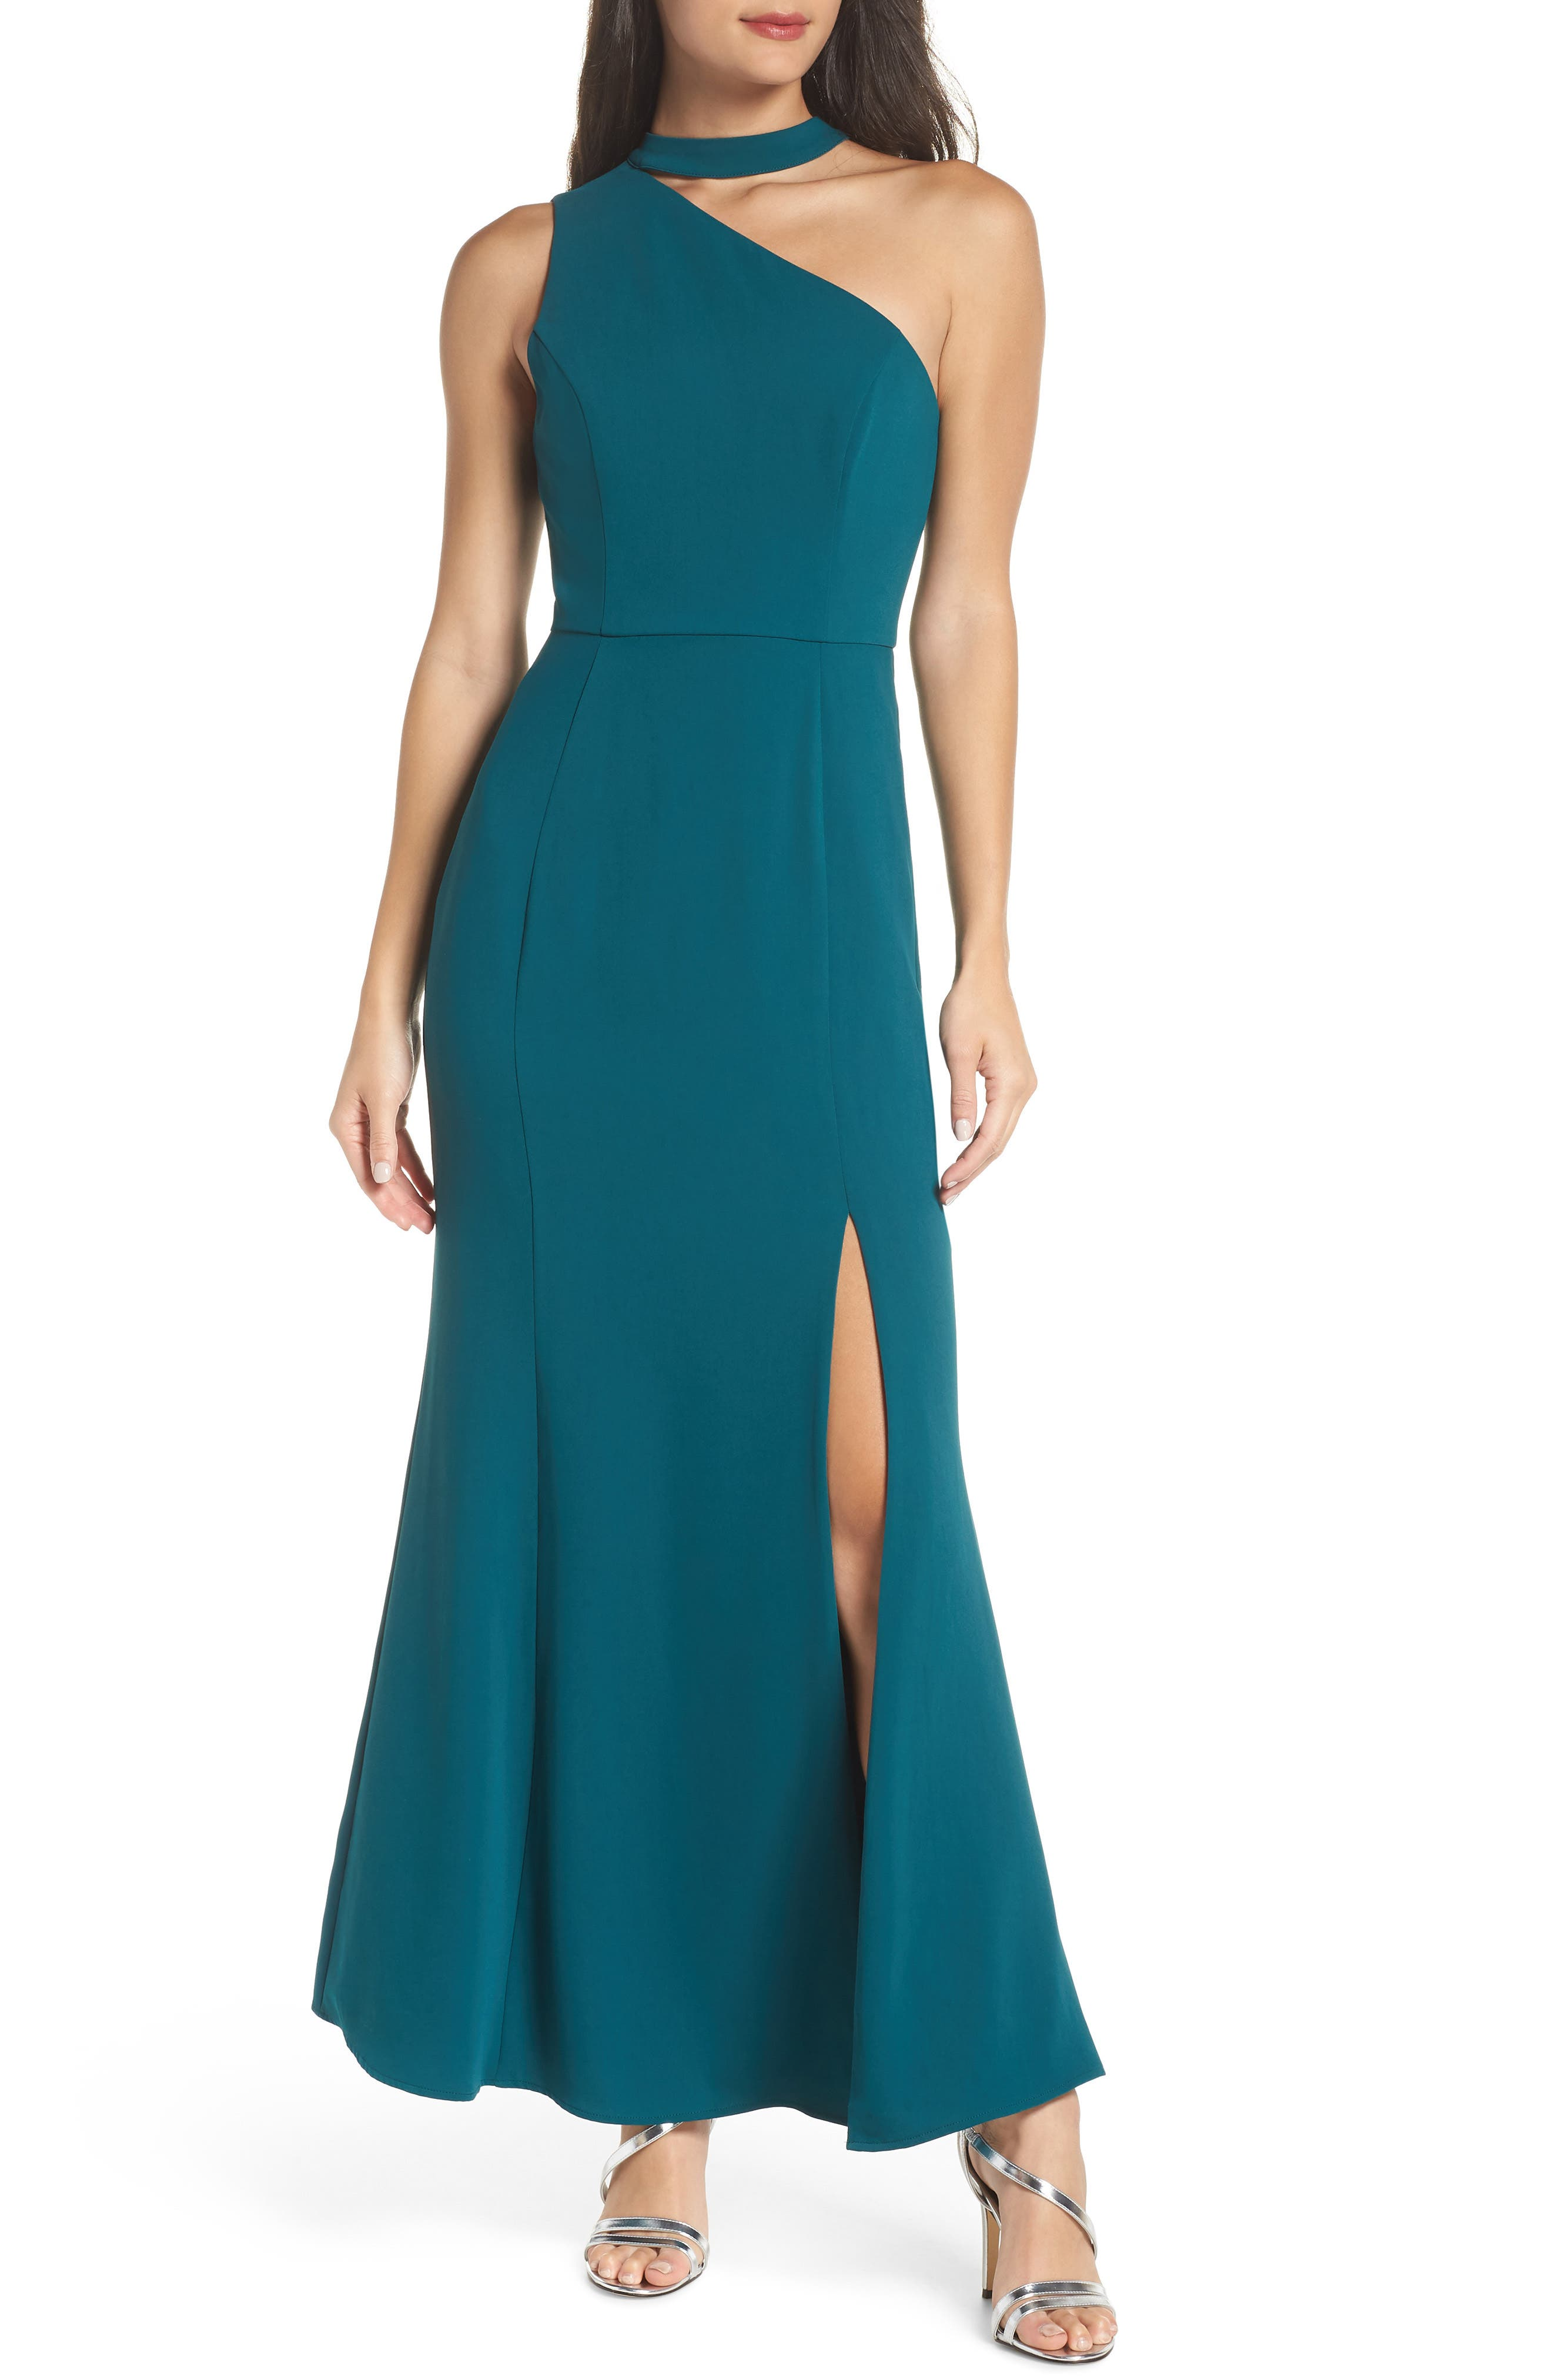 Harlyn One-Shoulder Choker Collar Gown